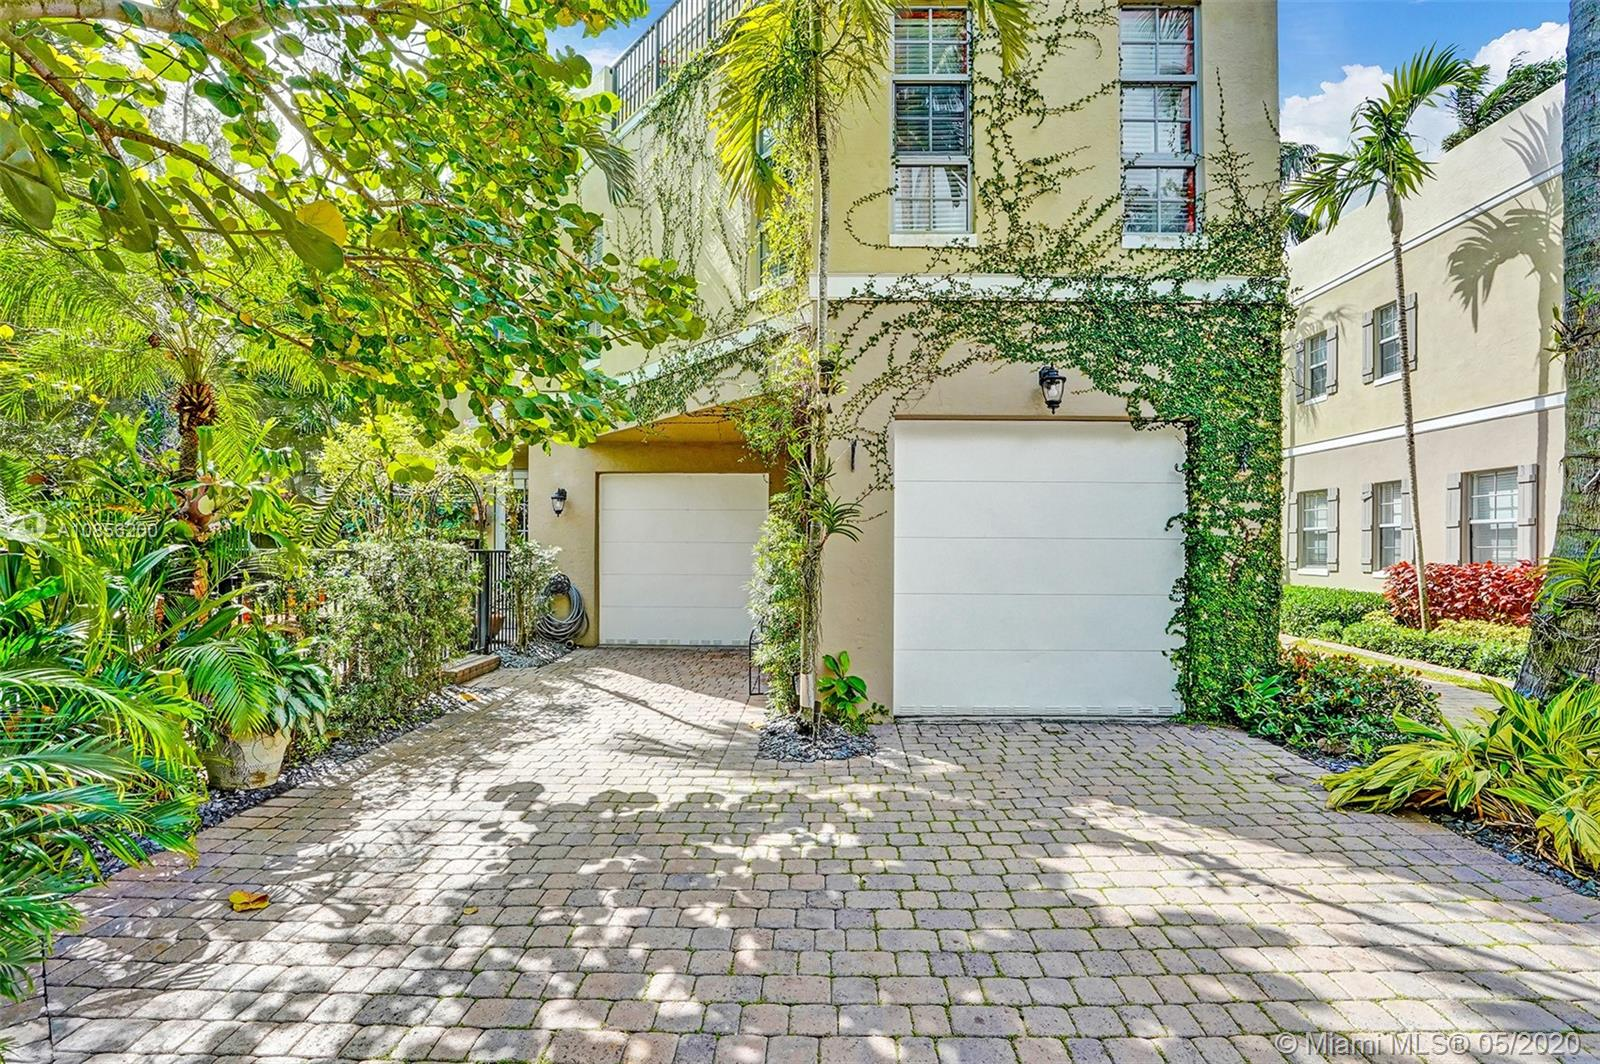 LISTED BELOW APPRAISAL VALUE!! 2400 SQ FT living space/3000 total-Ocean Access 3bed 2.5Bath Pool Home on a superb hidden cul-de-sac of Tarpon River... on the East side of Fort Lauderdale! The high-end finishes in and out of this townhouse are nothing short of impressive. Jenn-Air appliances and an extended wine-bar off the kitchen-All Brand new Granite and Quartz/Plenty of cabinet space and a pantry! Enjoy the high ceilings and open floor plan of this magnificent architecture, including a balcony on the top floor overlooking the pool, dock, exotic landscaping and sky line!  The master is amazing..lots of closet space, dbl vanities, master bath and private office. 2 Bedrooms/1Full bath on 1st Floor**No HOA FEE/NO MNGNT!!** Dbl Bay 2 CAR GARAGE*METAL ROOF**ALL IMPACT WINDOWS AND DOORS!!